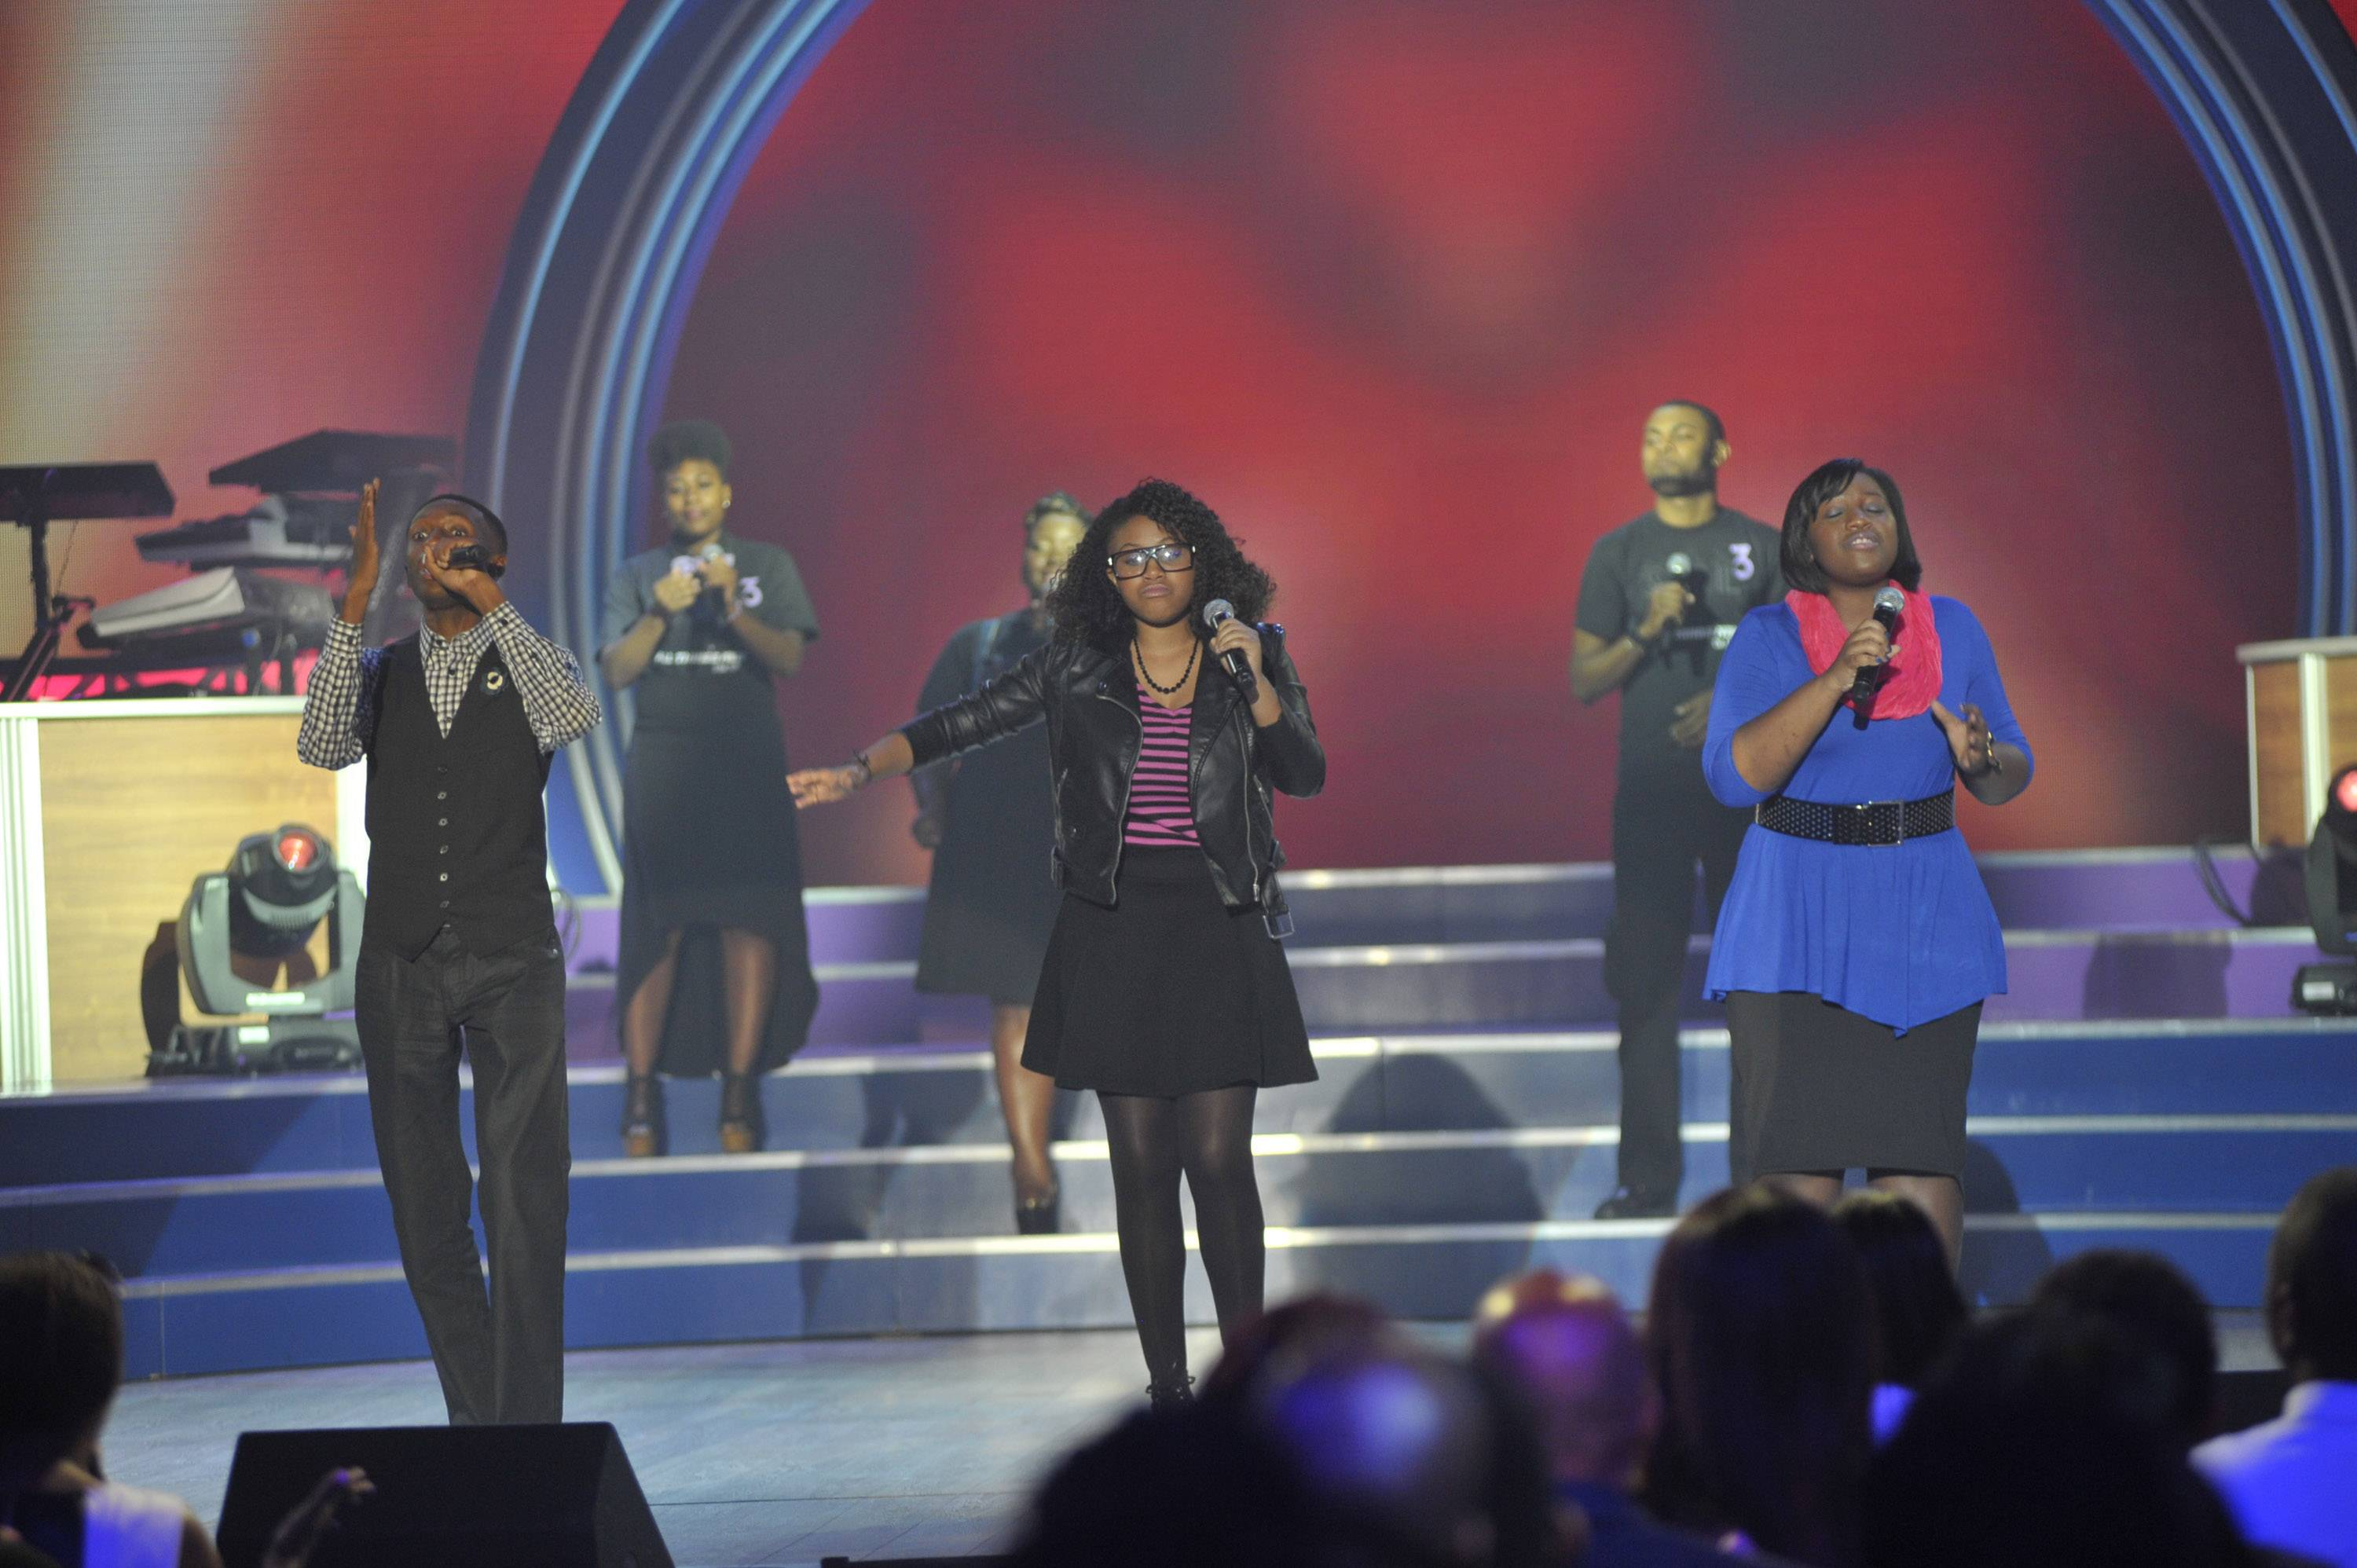 The New Kids on the Block  - STL3 is a teenage gospel group comprised of two sisters and a brother. They come together to help rid people of their negative self image and insecurity by focusing on Jesus being the center of it all. (Photo: Kris Connor/Getty Images for BET Networks)